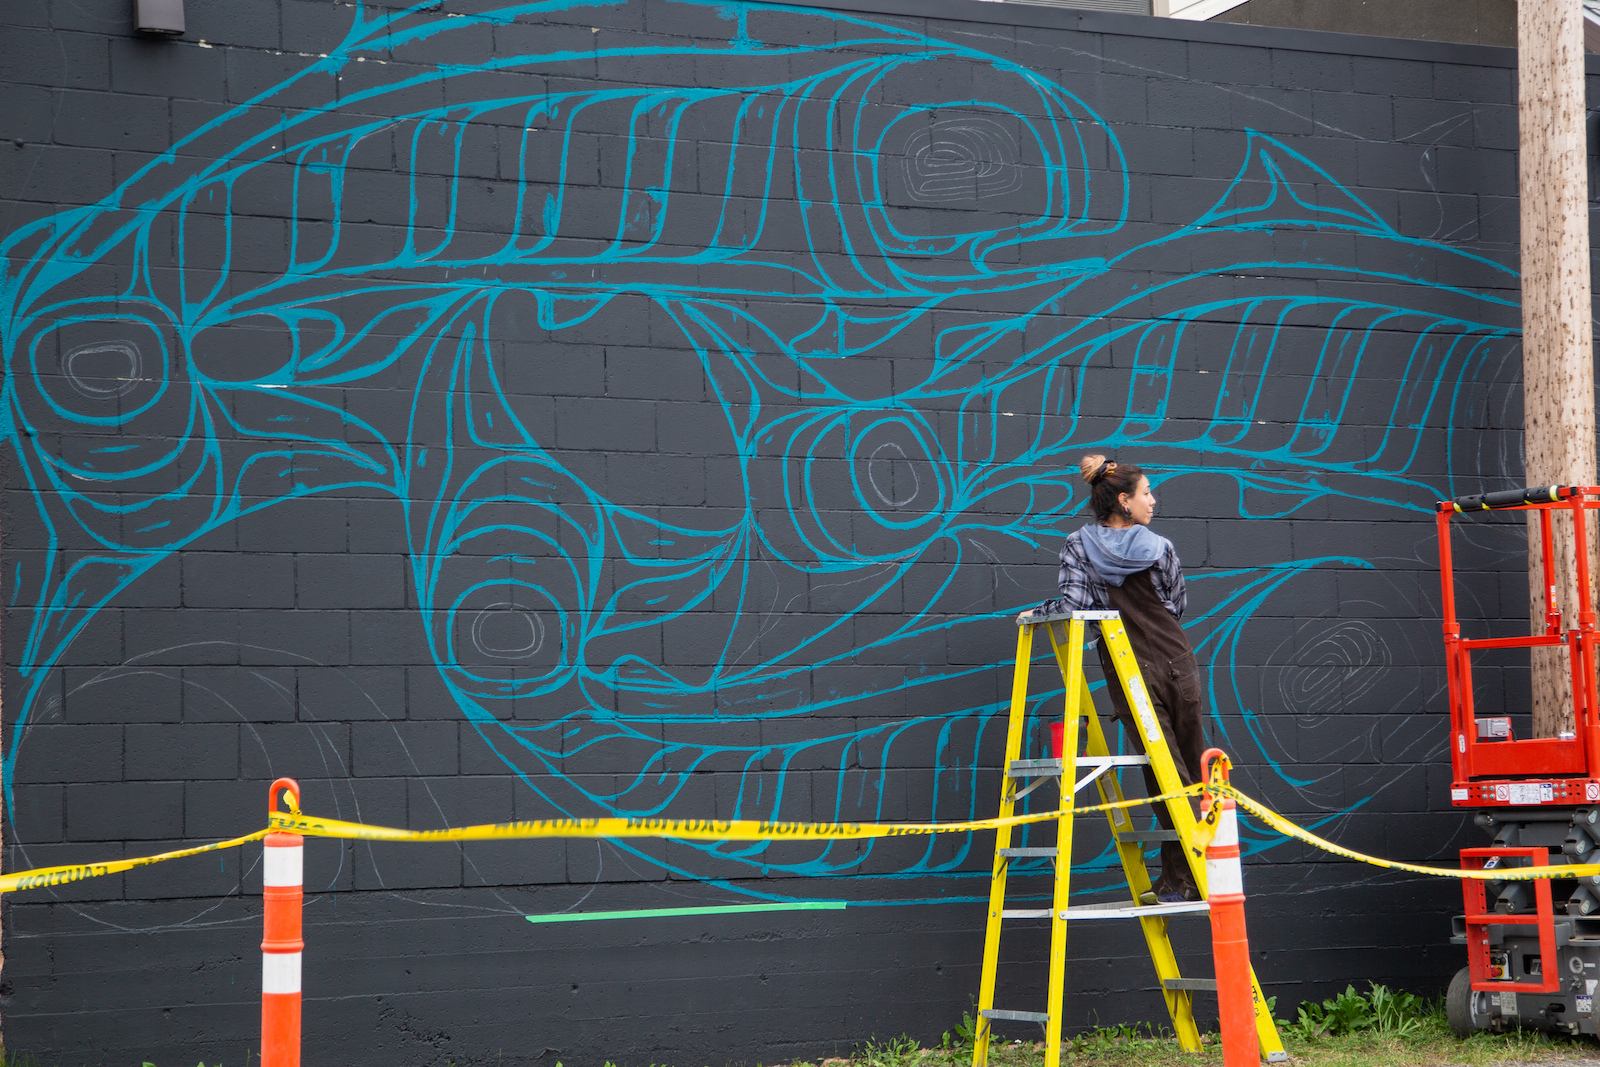 One of the 5 new murals painted in Terrace in 2020 commissioned by the Skeena Salmon Arts Festival Society. The 2020 theme was celebrating sense of place in the Northwest .